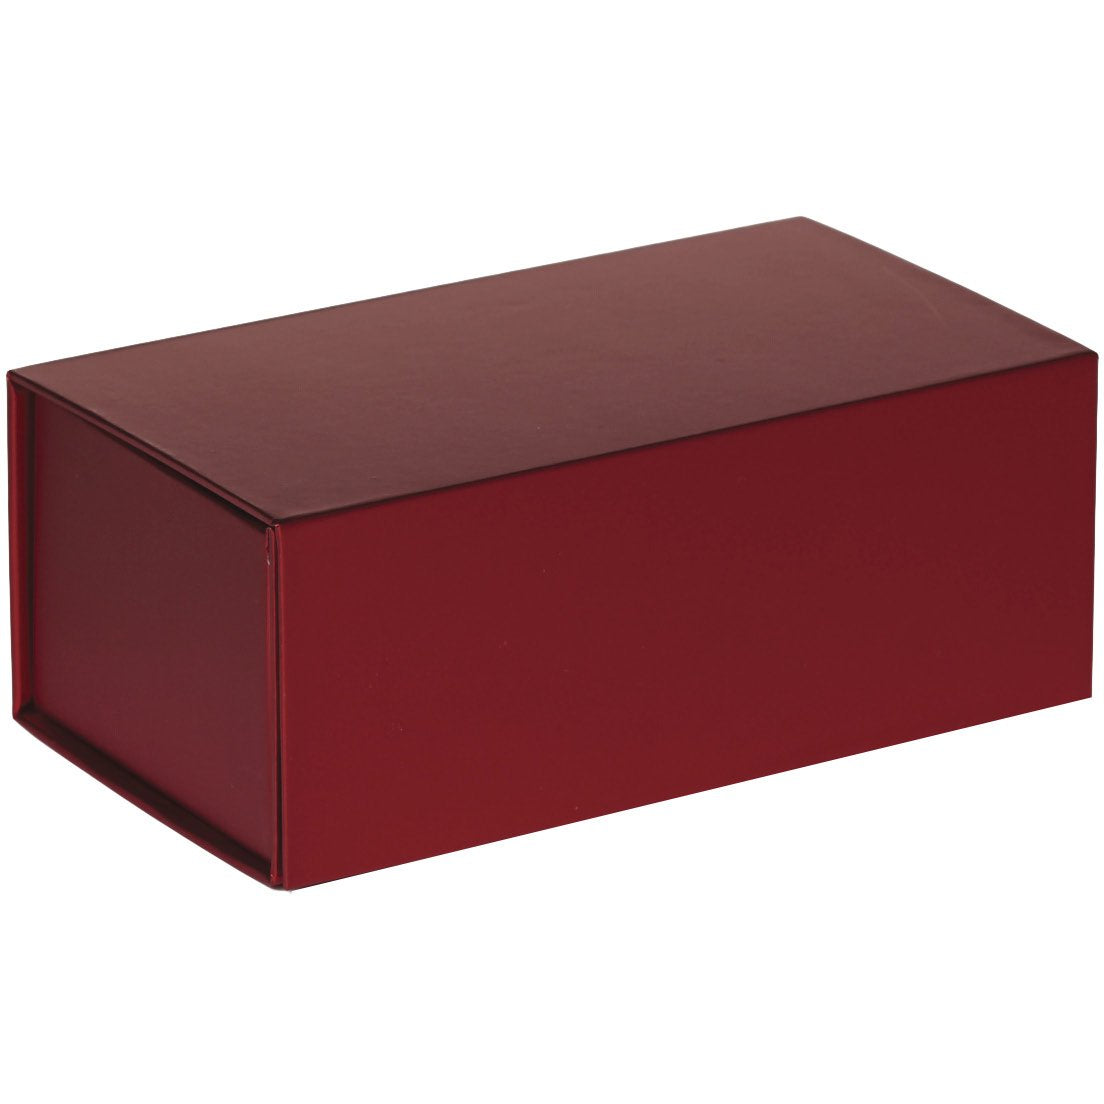 Jillson & Roberts Small Gift Box with Magnetic Closure, Metallic Red Matte (12 Pcs)